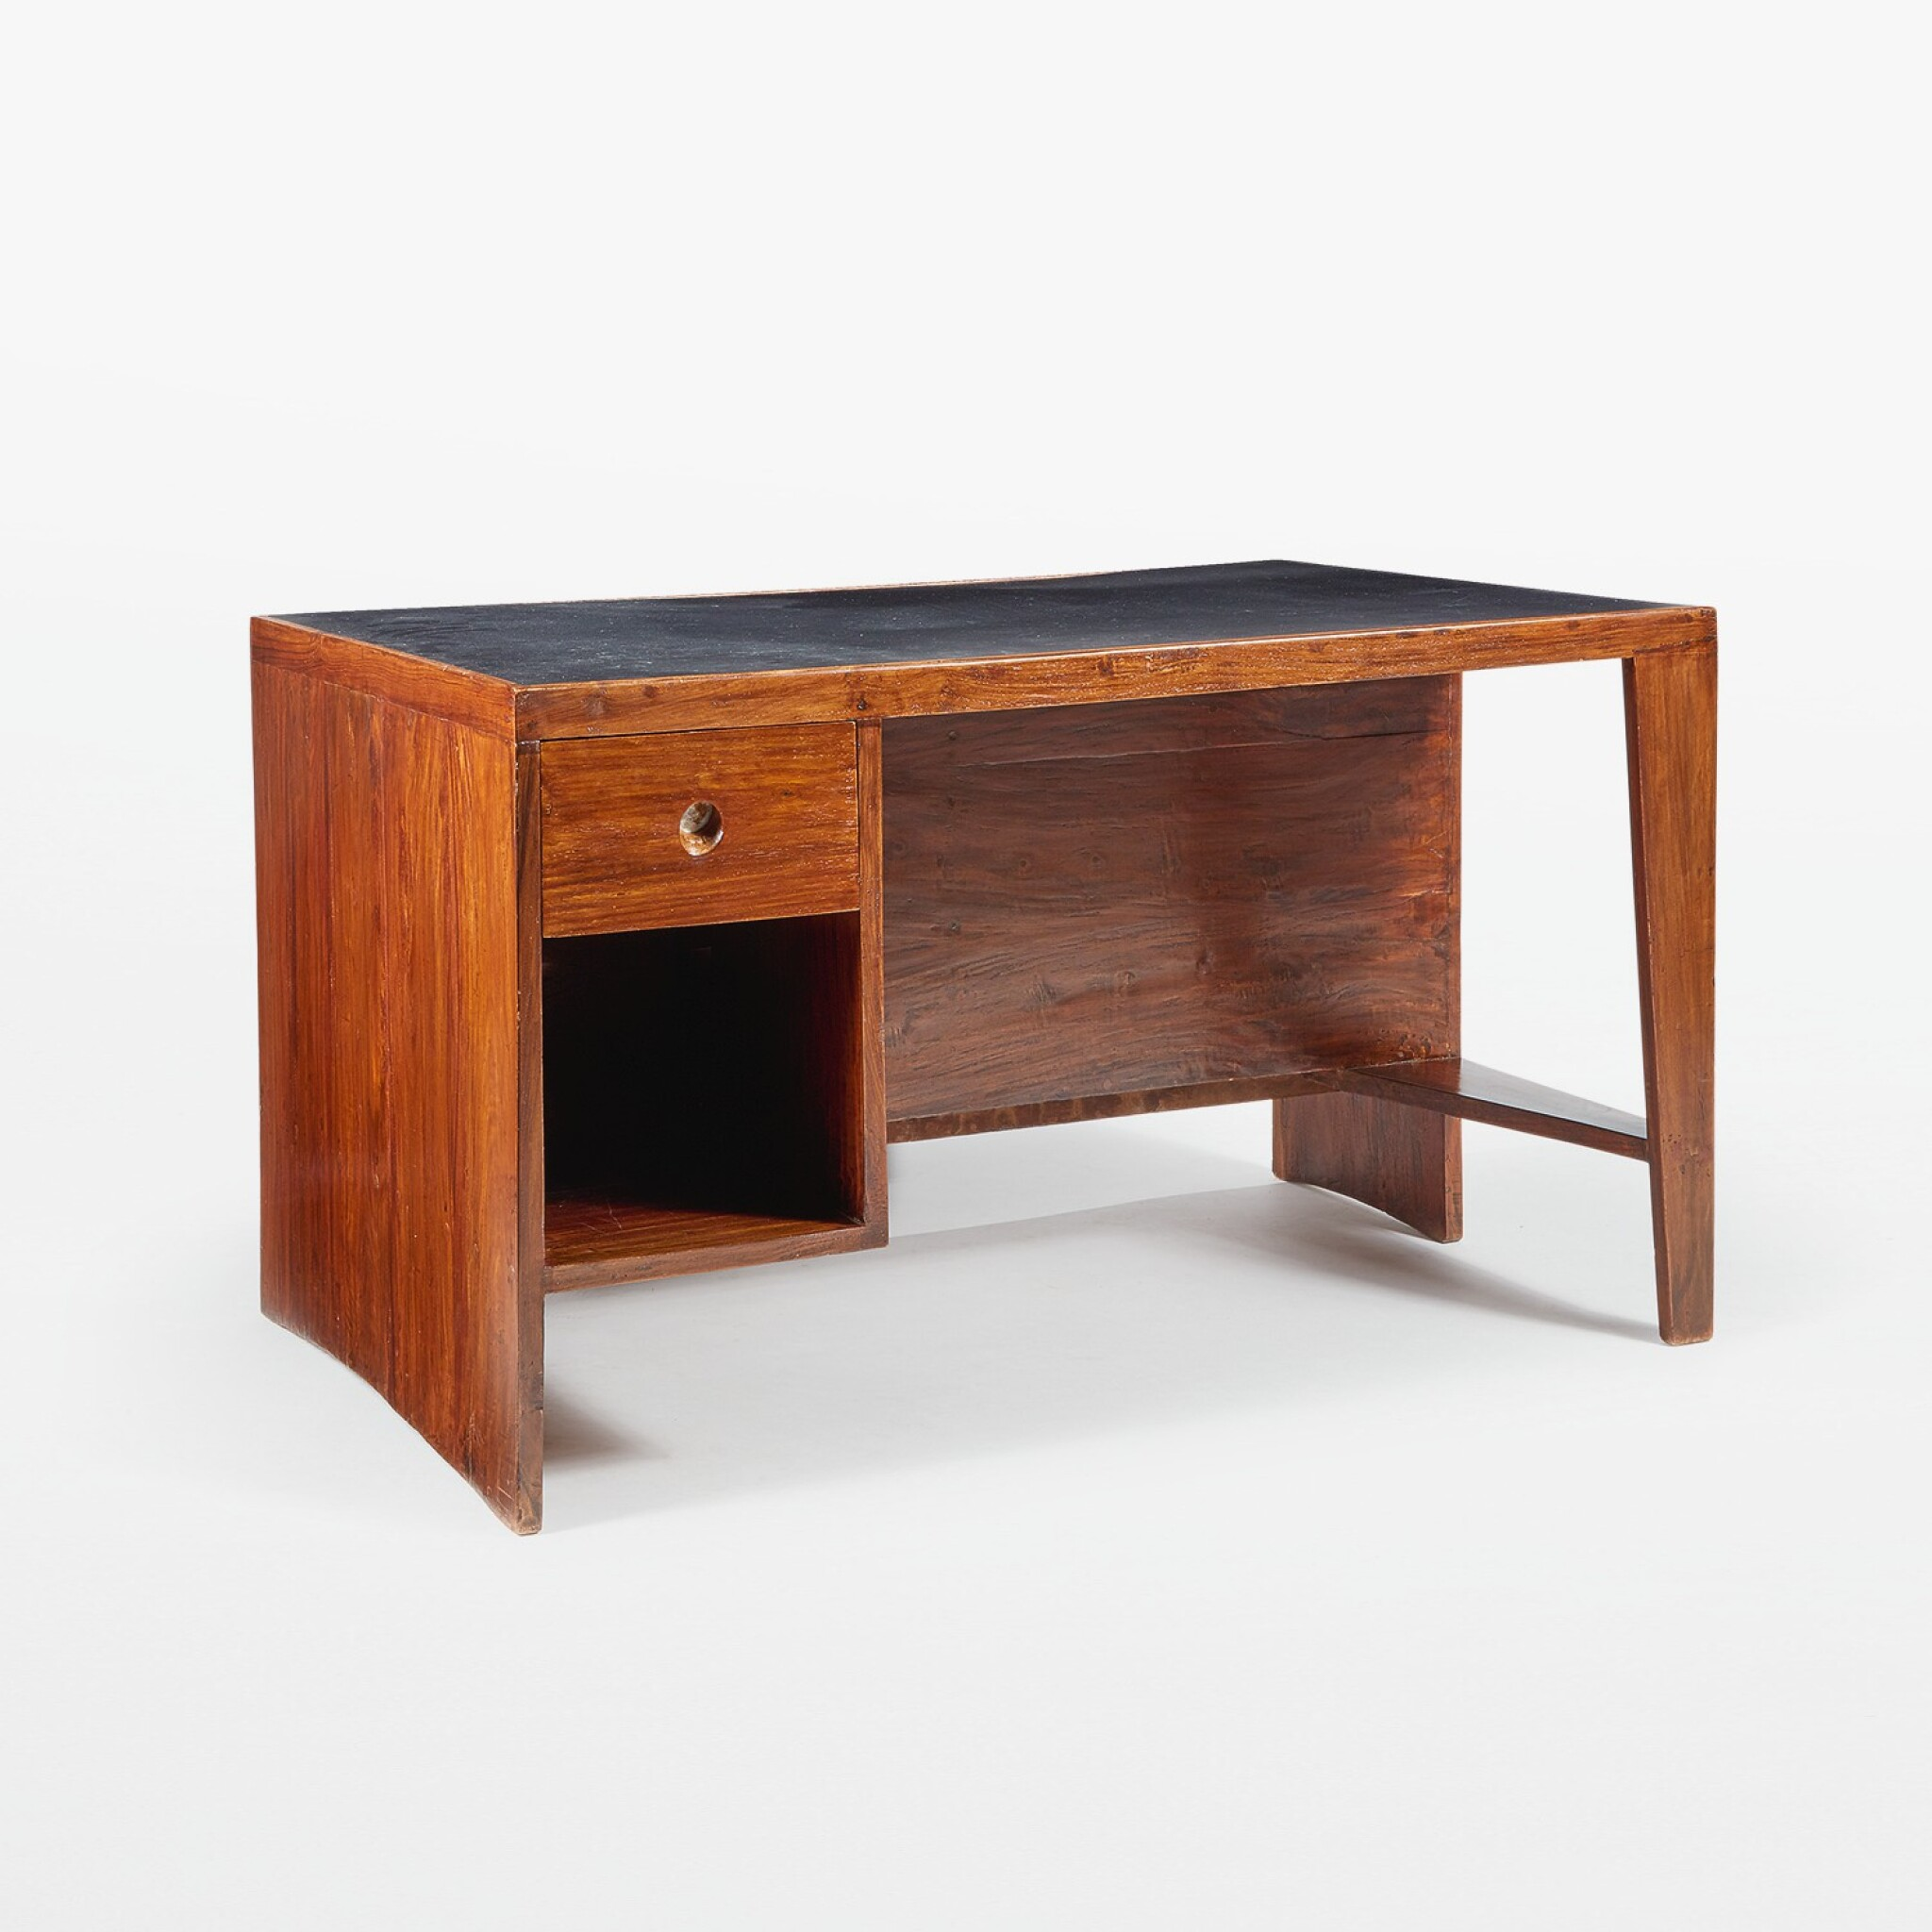 """View full screen - View 1 of Lot 84. """"Pigeonhole"""" or """"Office Table"""" Desk, Model No. PJ-BU-02-A."""